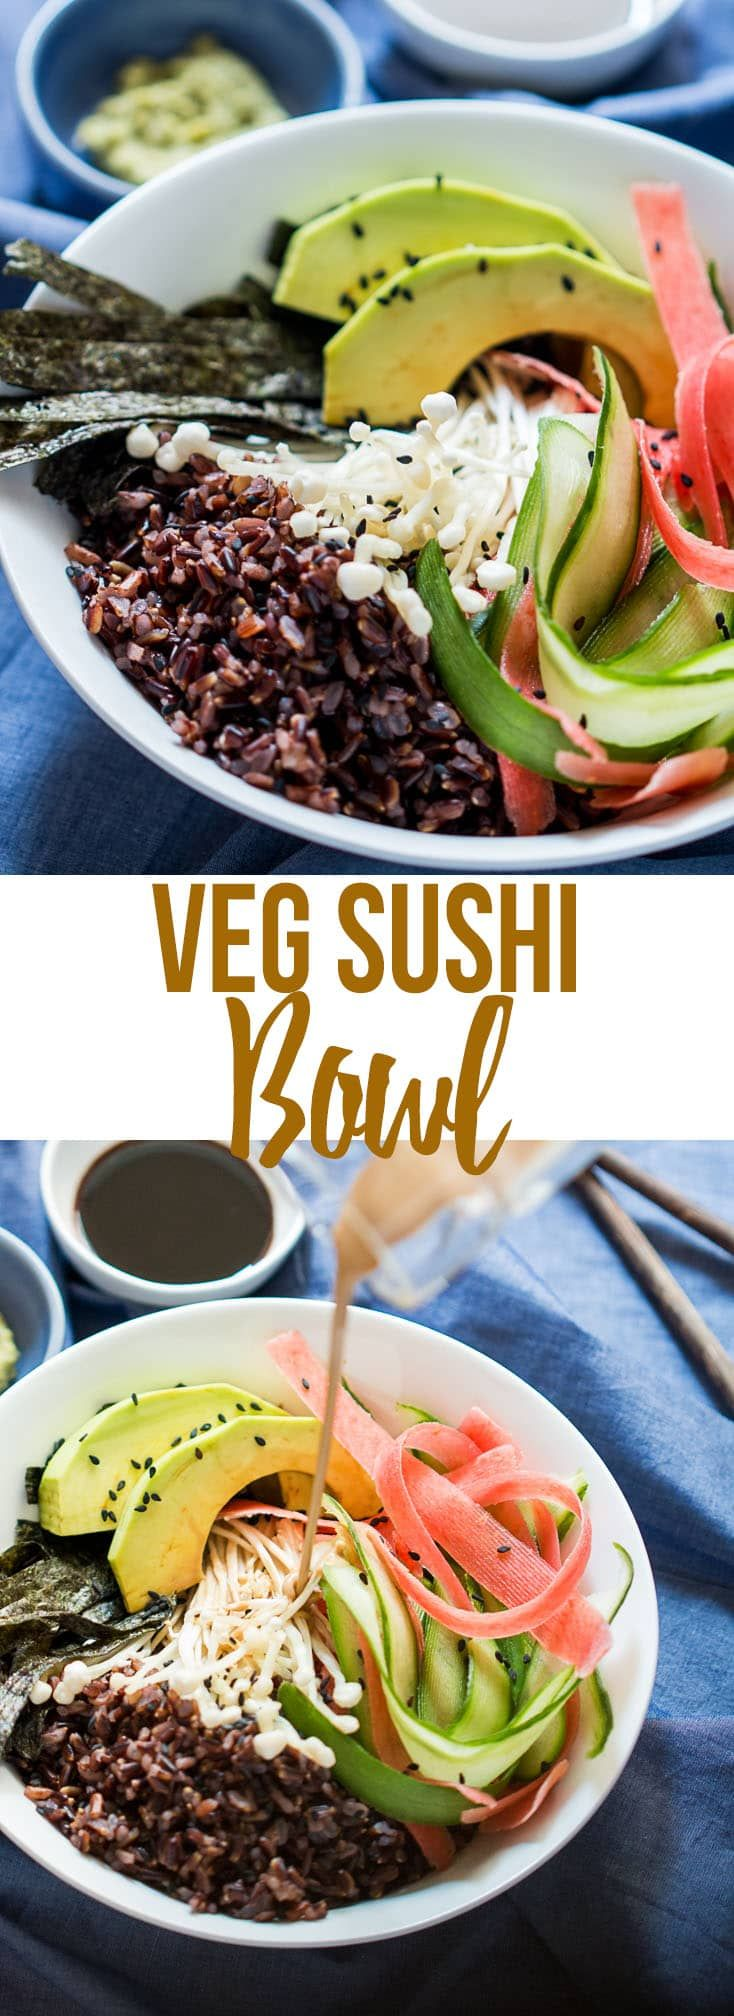 781 best japanese recipes images on pinterest japanese cuisine an easy vegetarian sushi bowl recipe with teriyaki dressing for instant sushi gratification ten tips to make great sushi forumfinder Choice Image